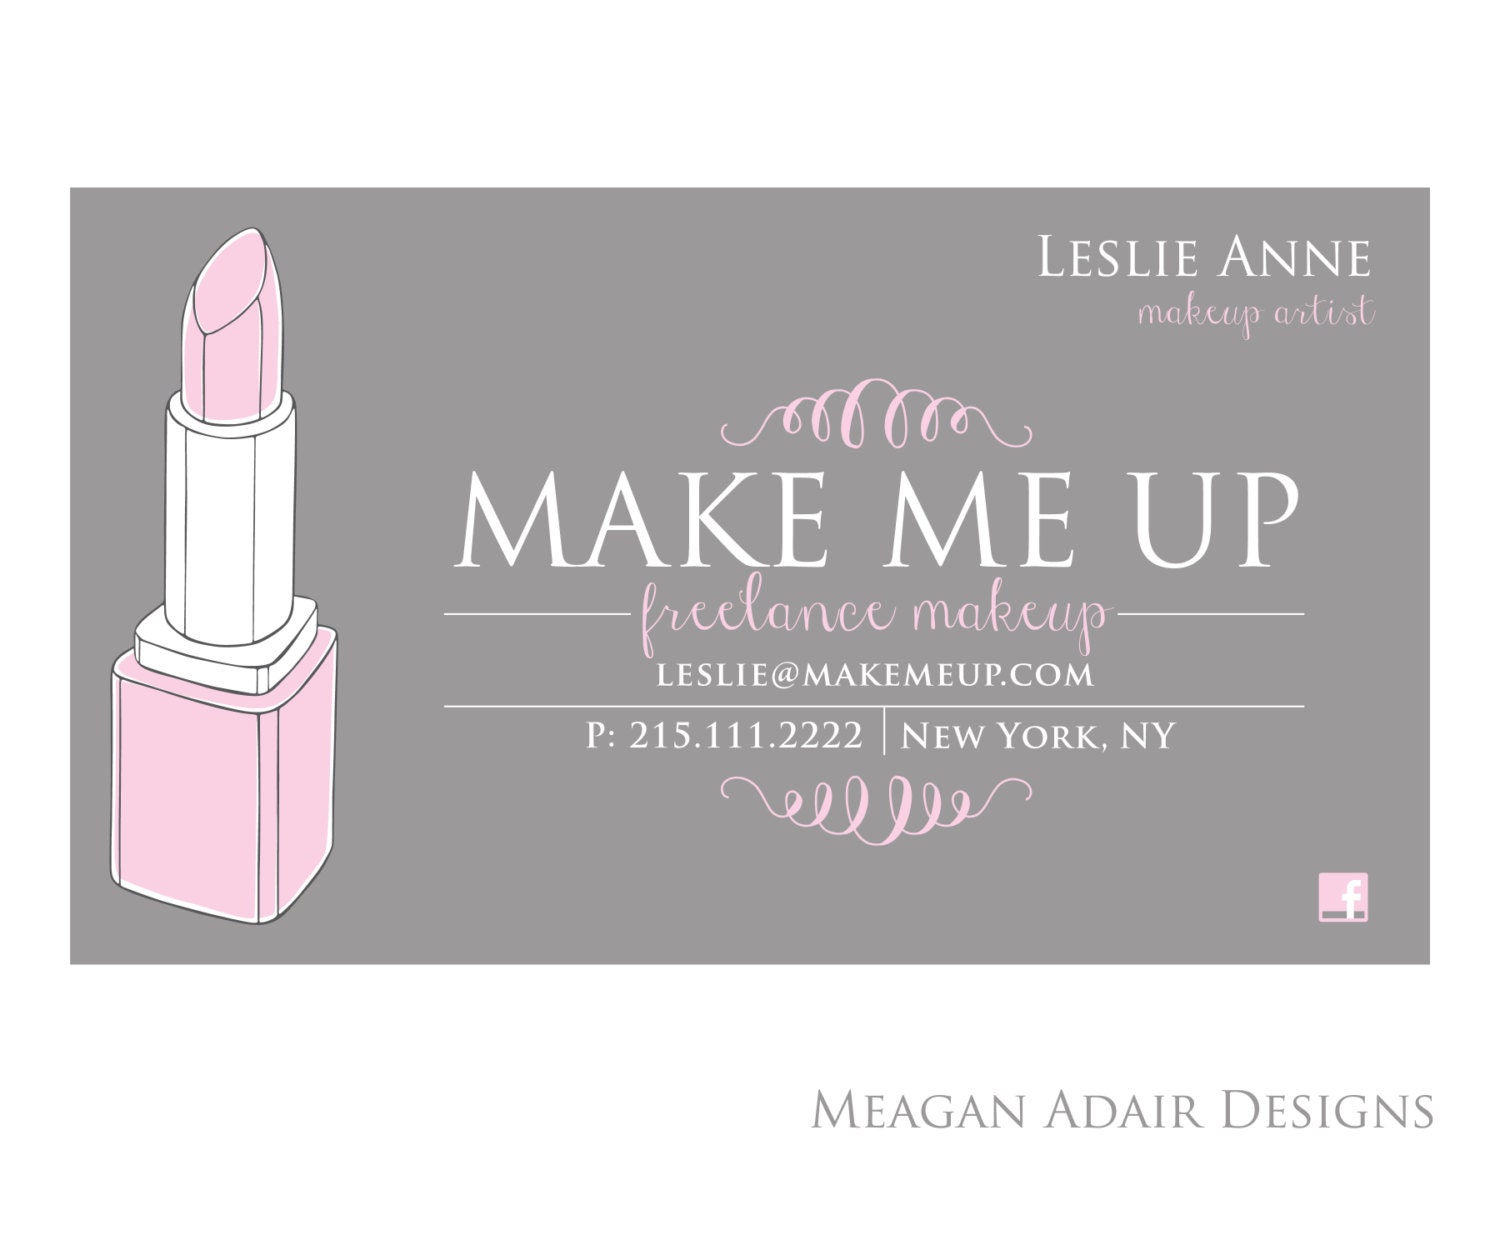 Makeup Artist Business Cards Templates Business Card Sample - Makeup artist business card template